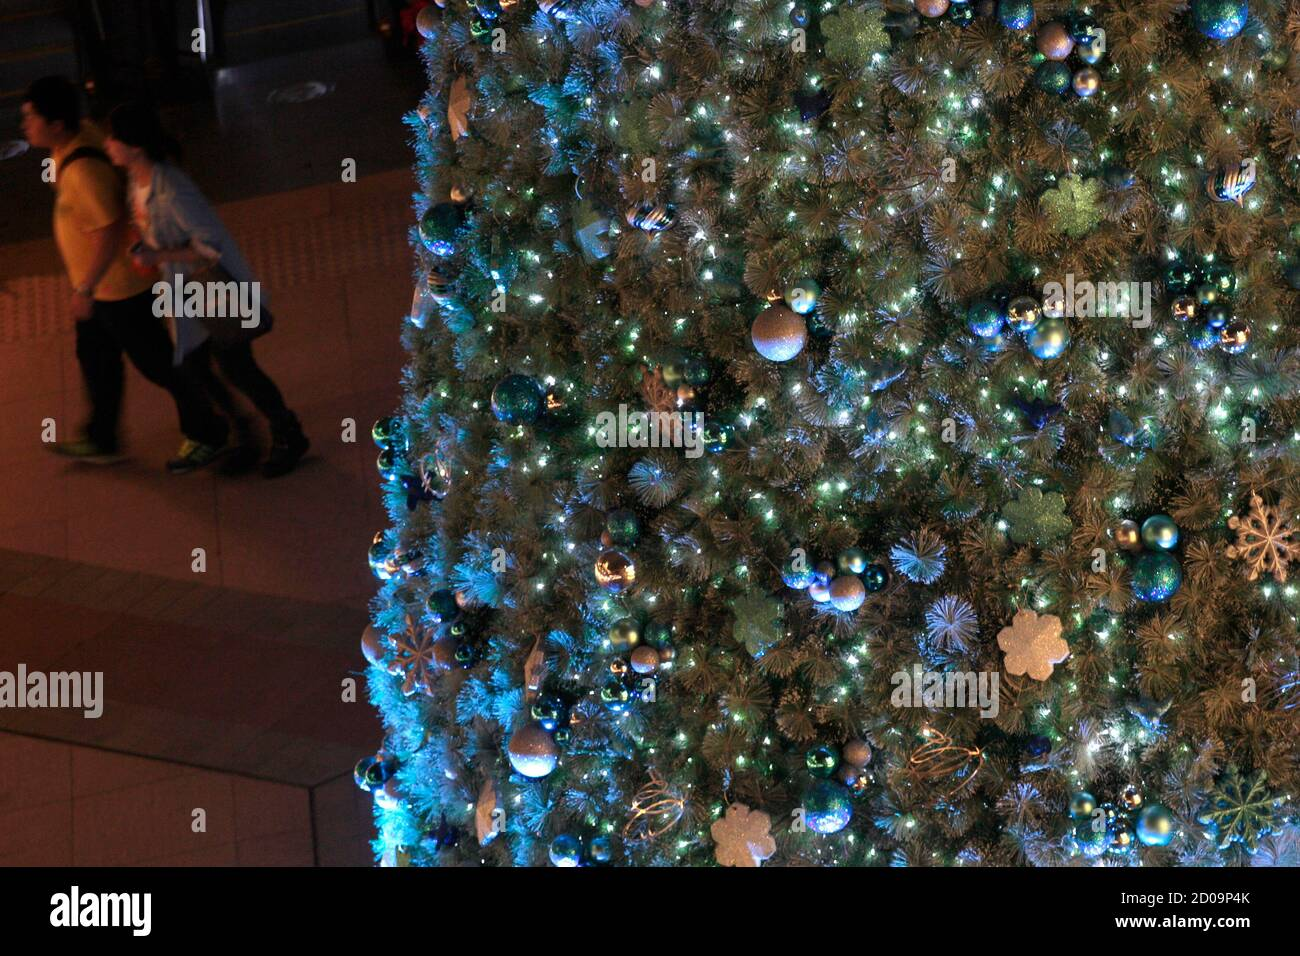 Tyrone Mall Christmas Day 2021 Christmas Tree In China Asia High Resolution Stock Photography And Images Alamy